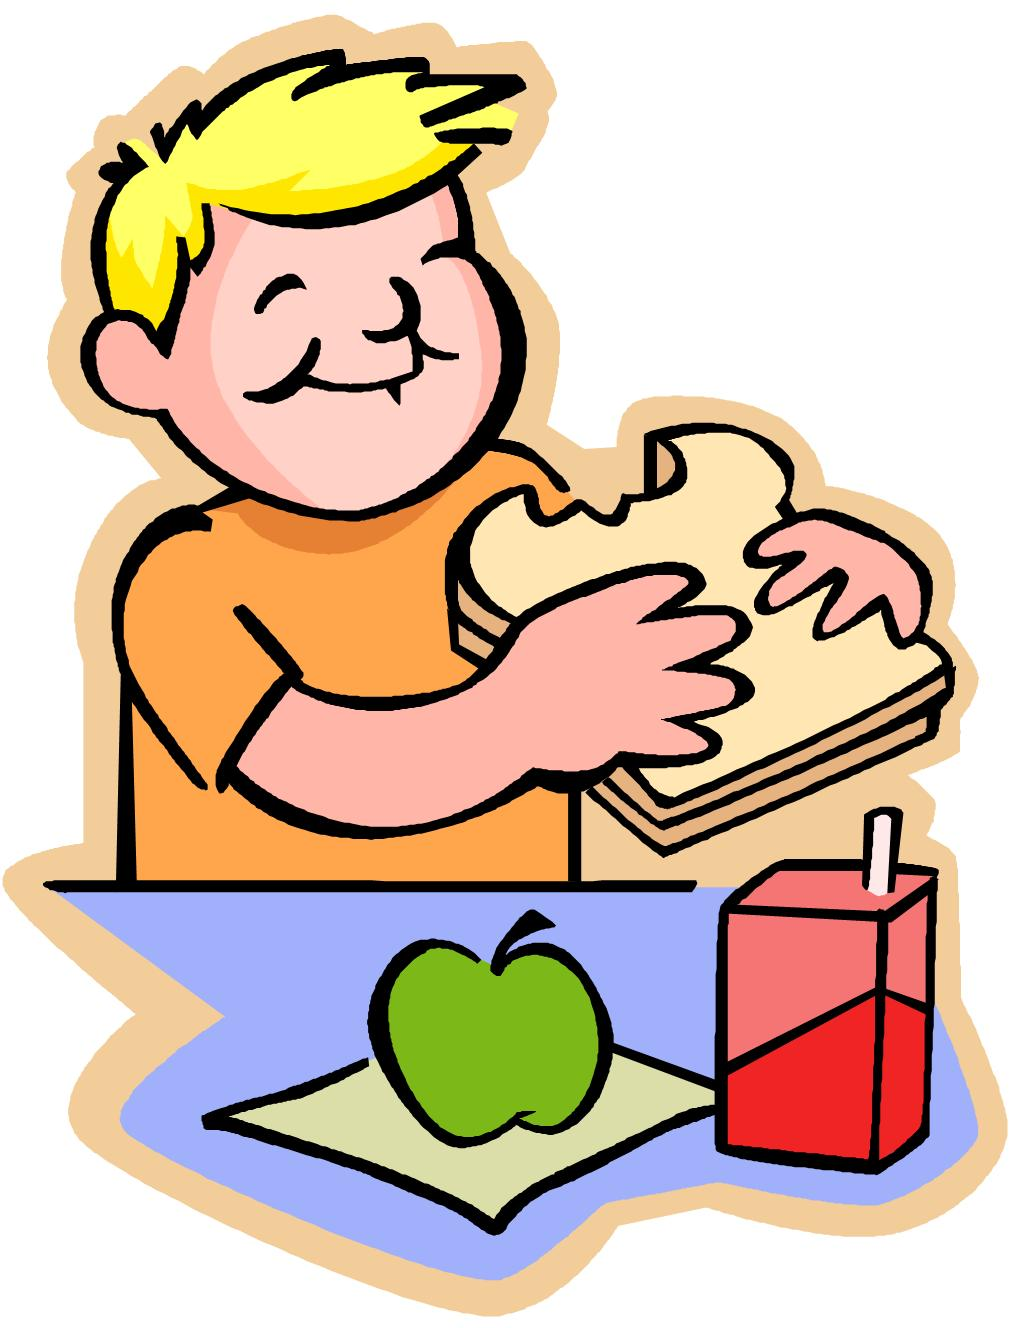 1018x1328 Lunch Bag Clipart Free Images